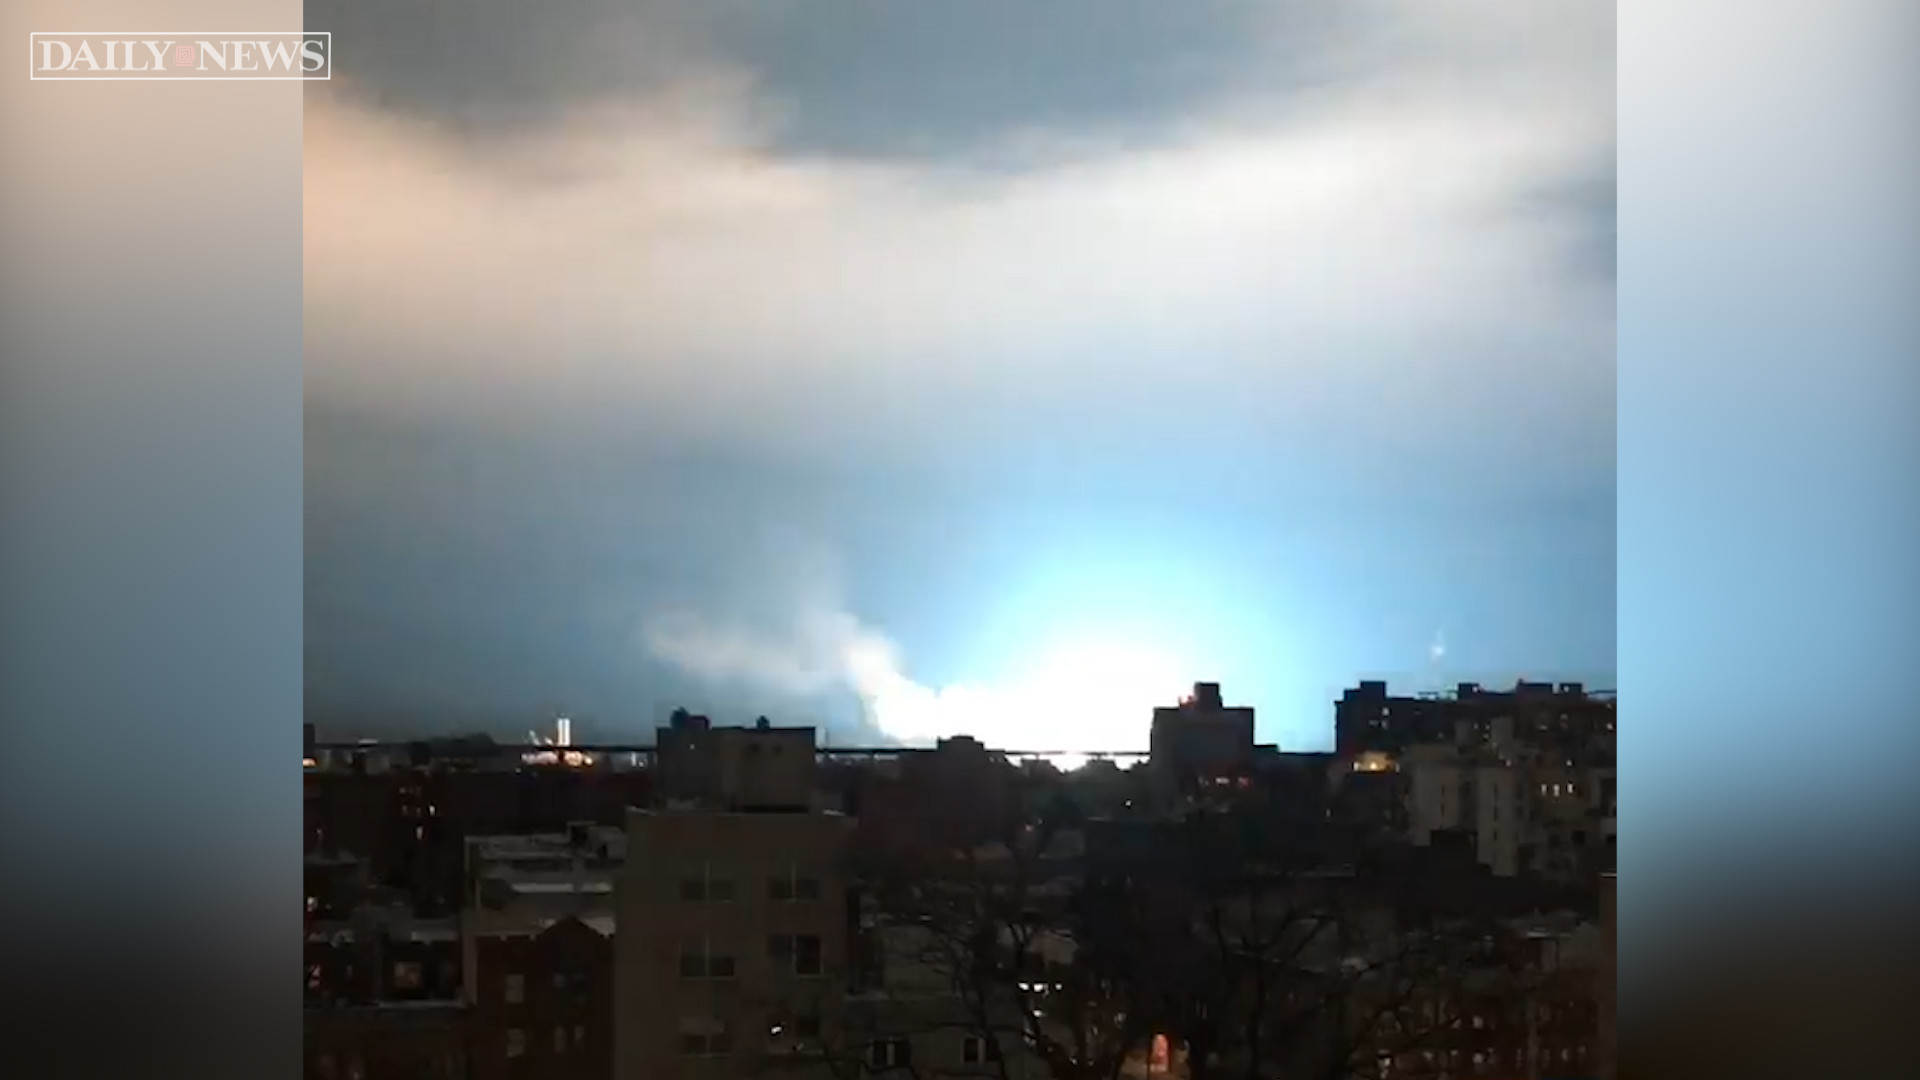 NYC's night sky turned bright blue by Con Ed transformer